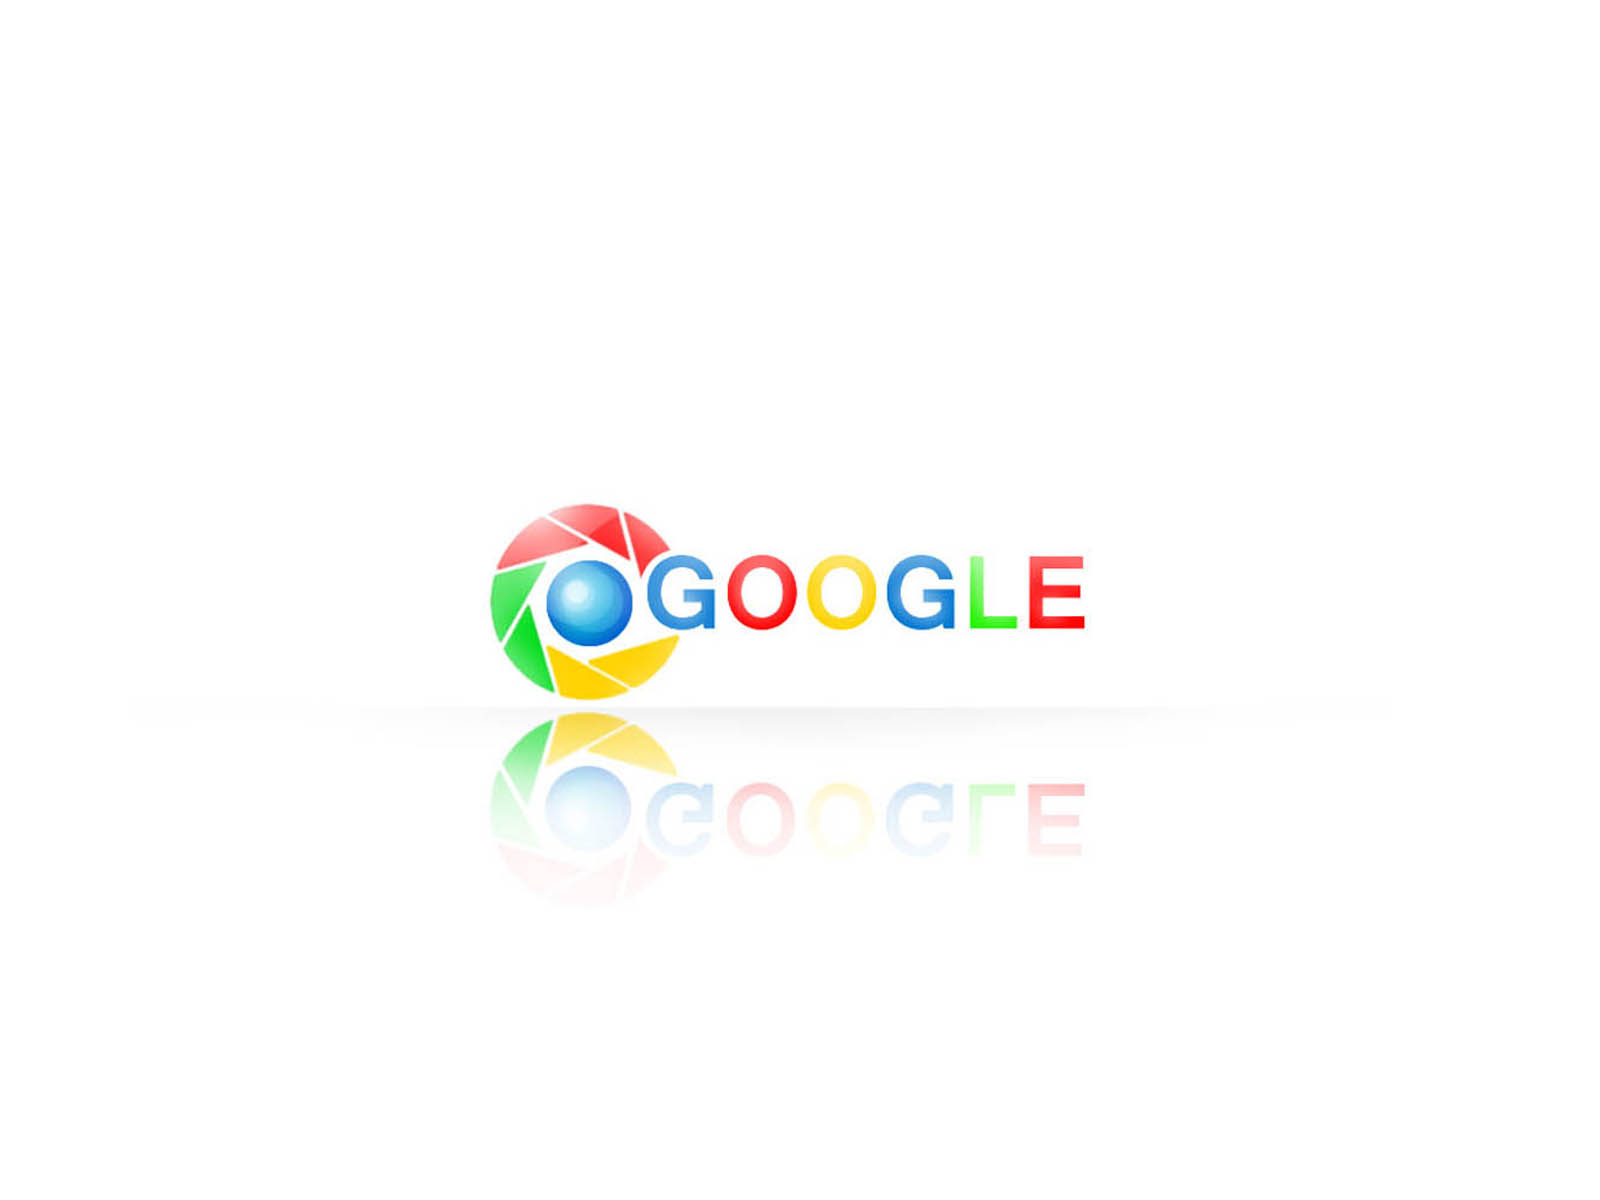 Google themes for iphone - Wallpapers Google Desktop Wallpapers Google Desktop Backgrounds